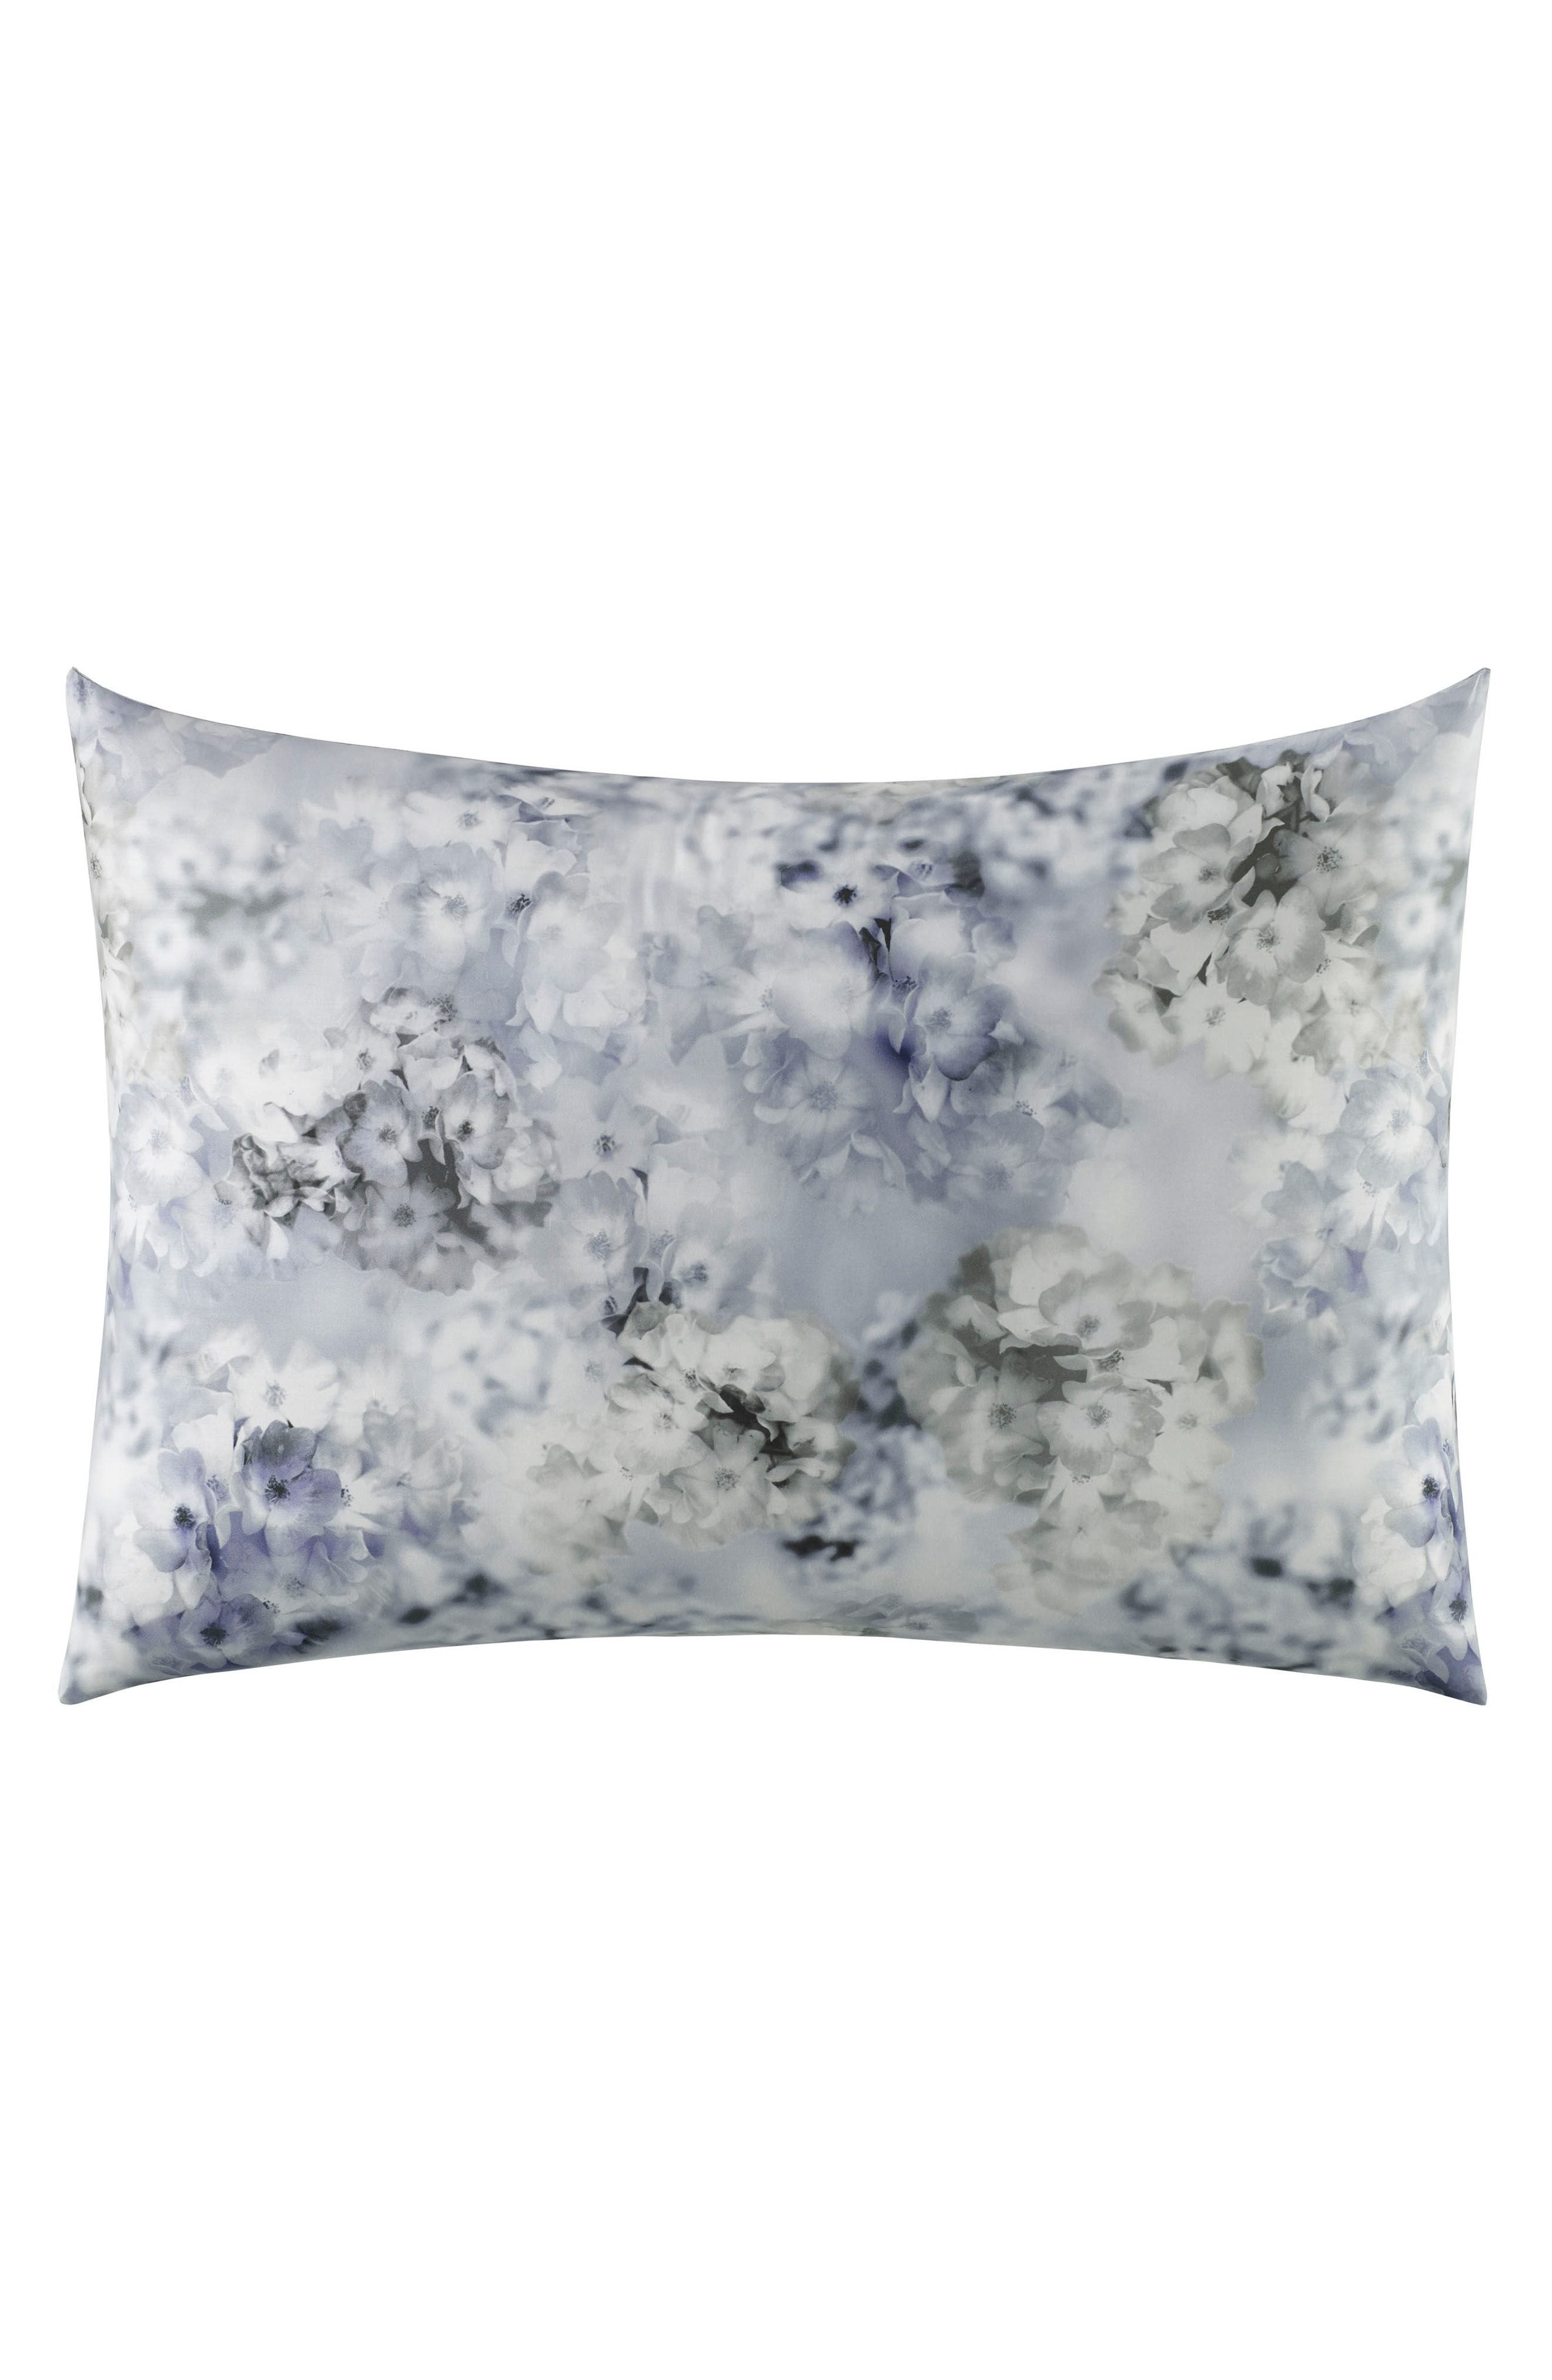 Main Image - Vera Wang Veiled Bouquet 300 Thread Count Sham